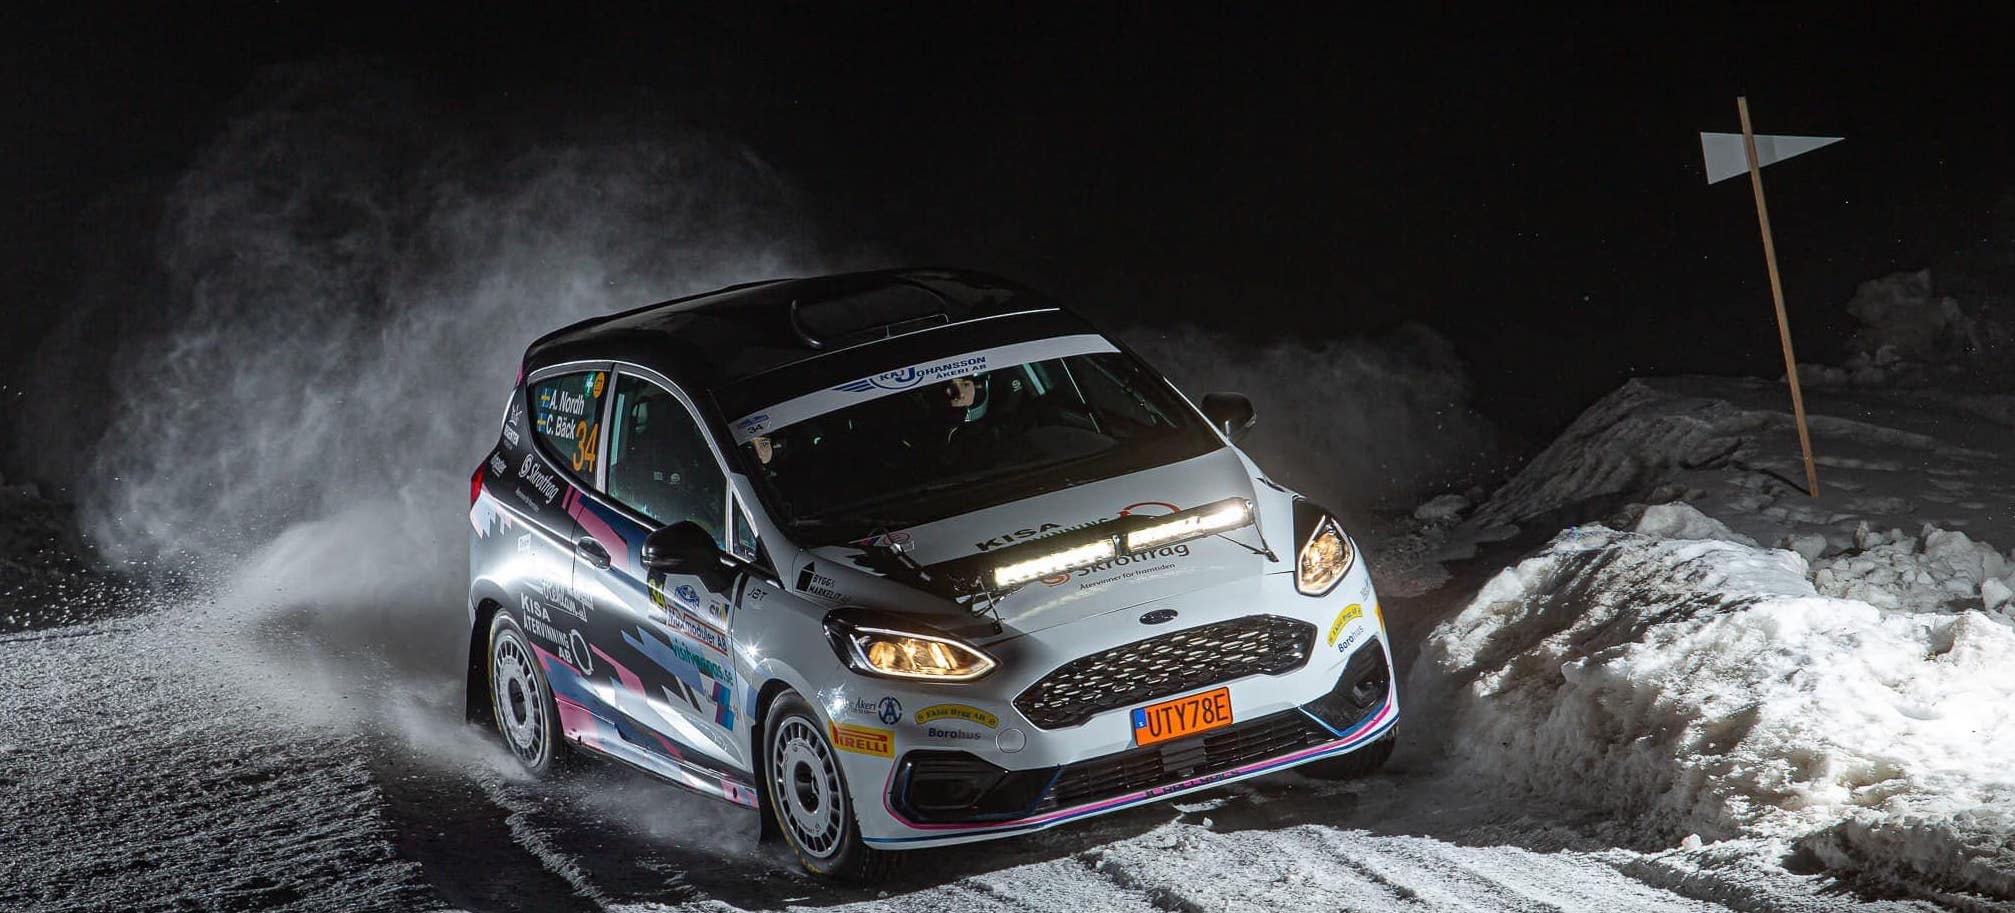 ERC Junior Nordh: The learning starts in Liepaja